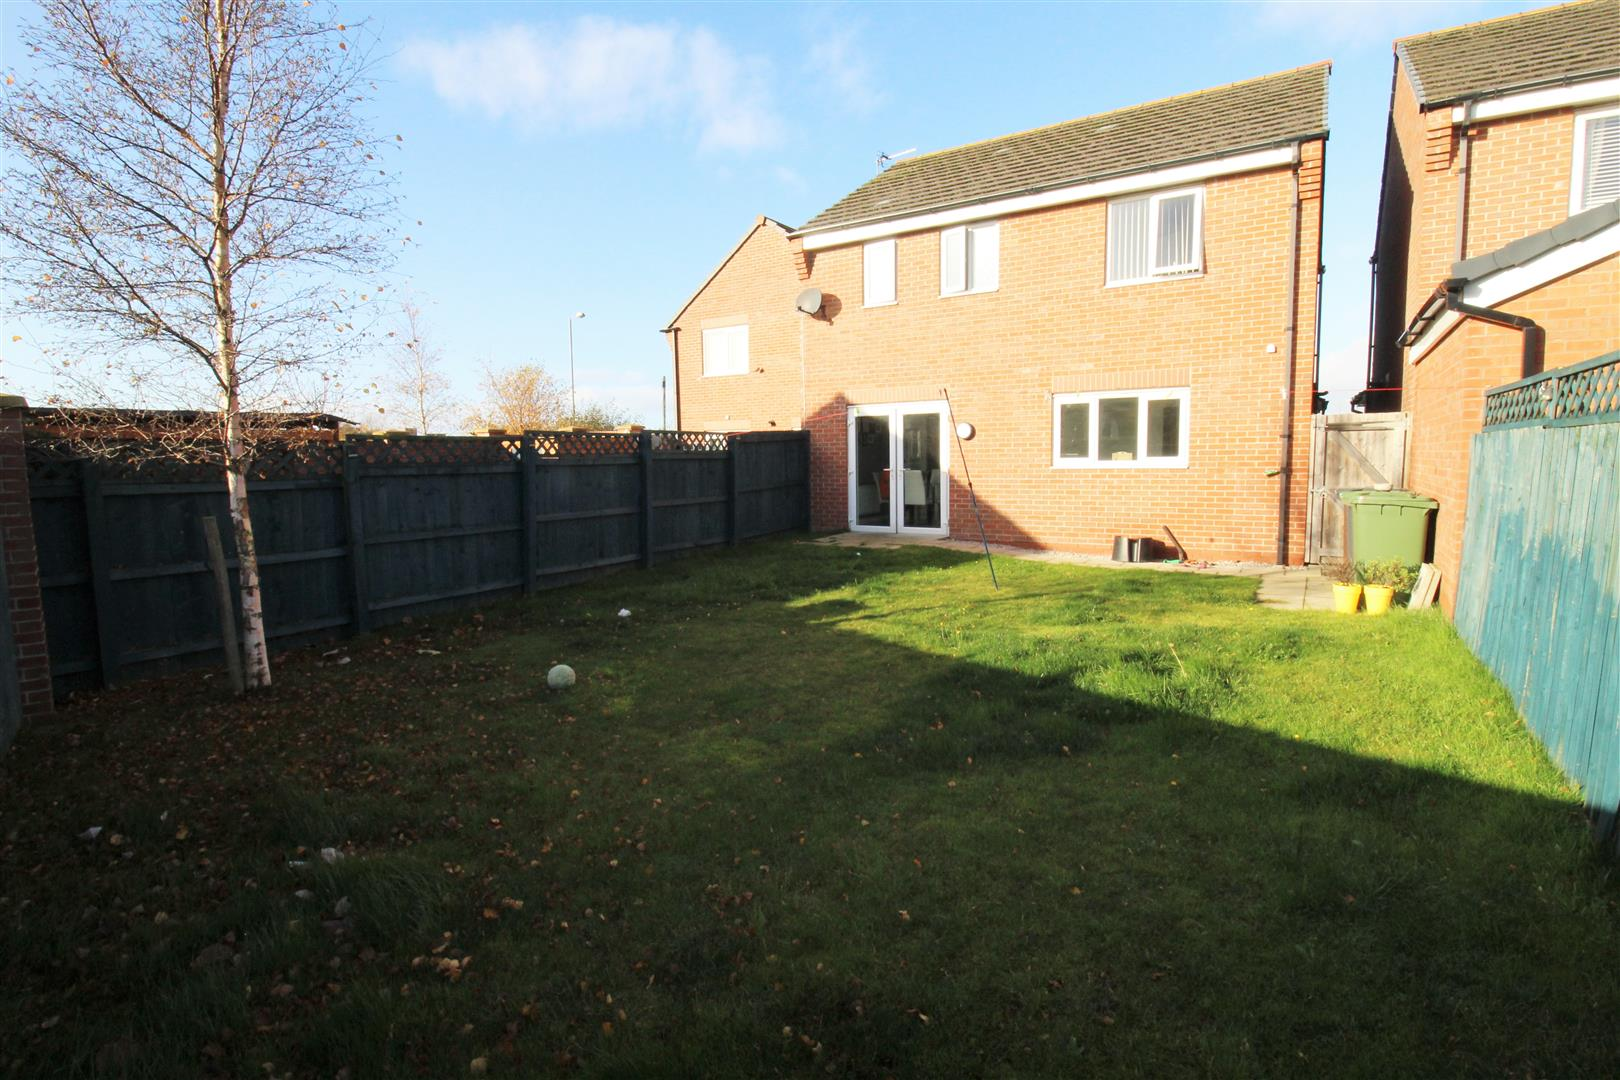 3 Bedrooms, House - Detached, Staley Drive, Bootle